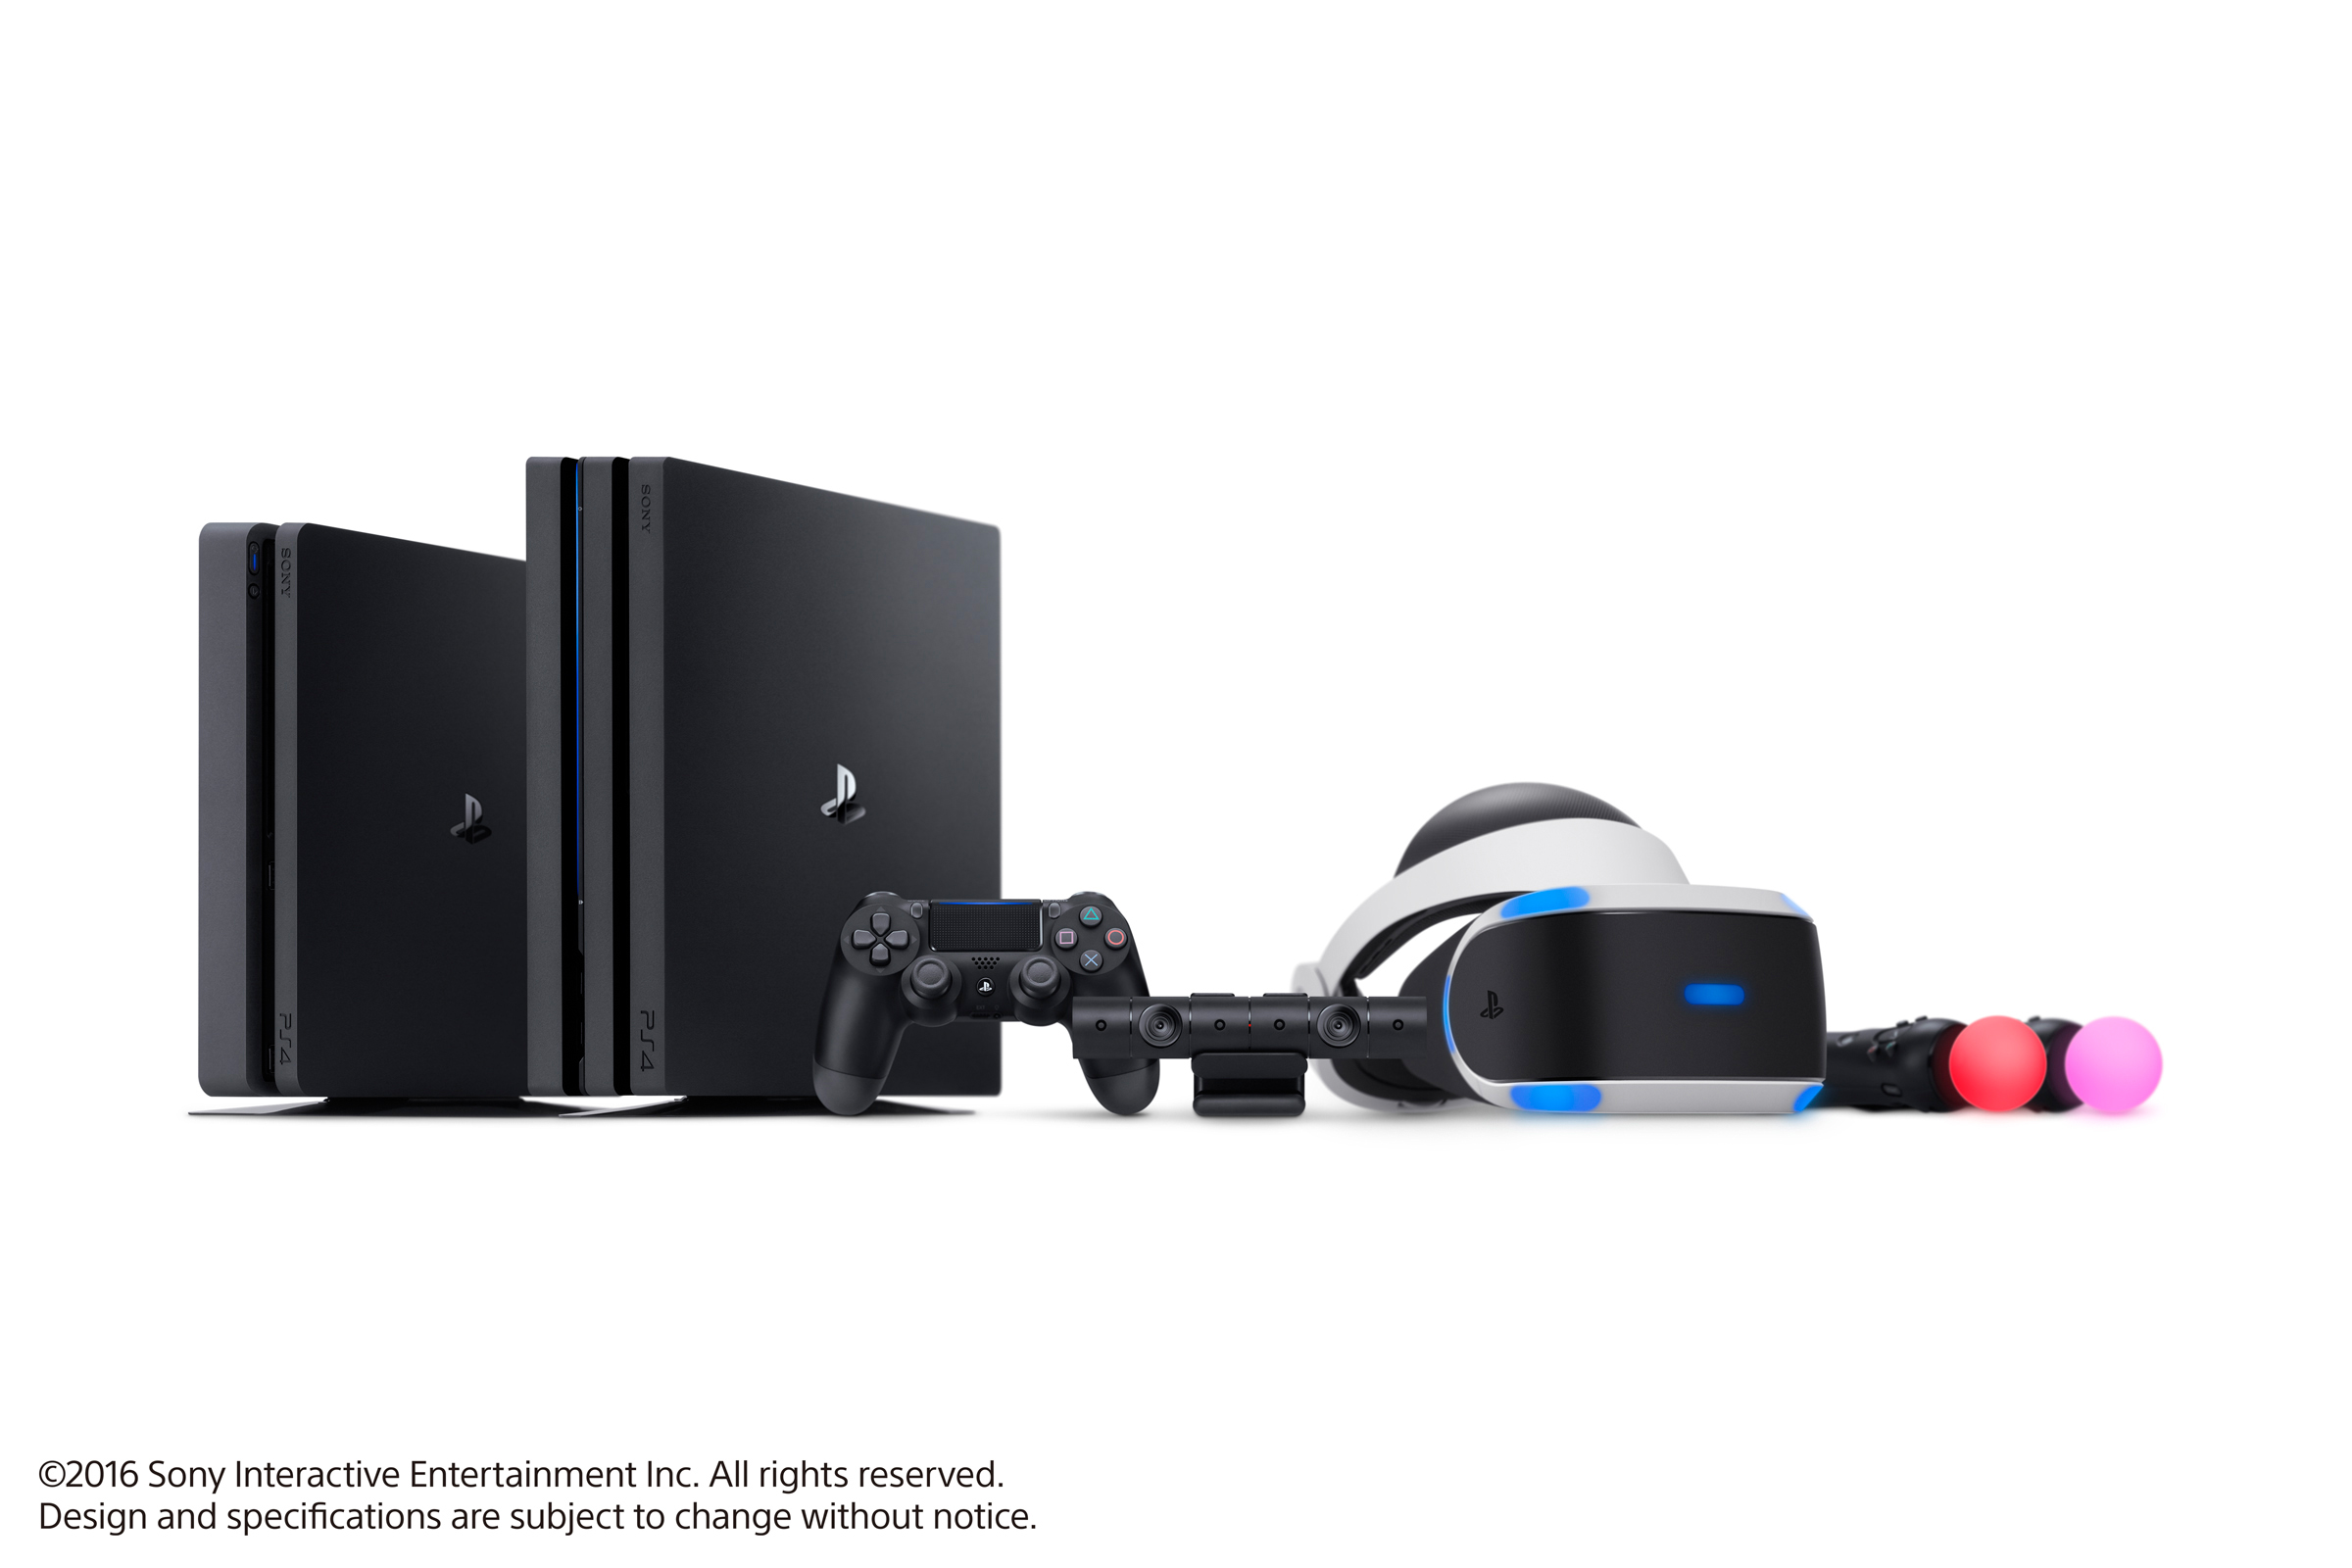 playstation-4-family-photo-image-828